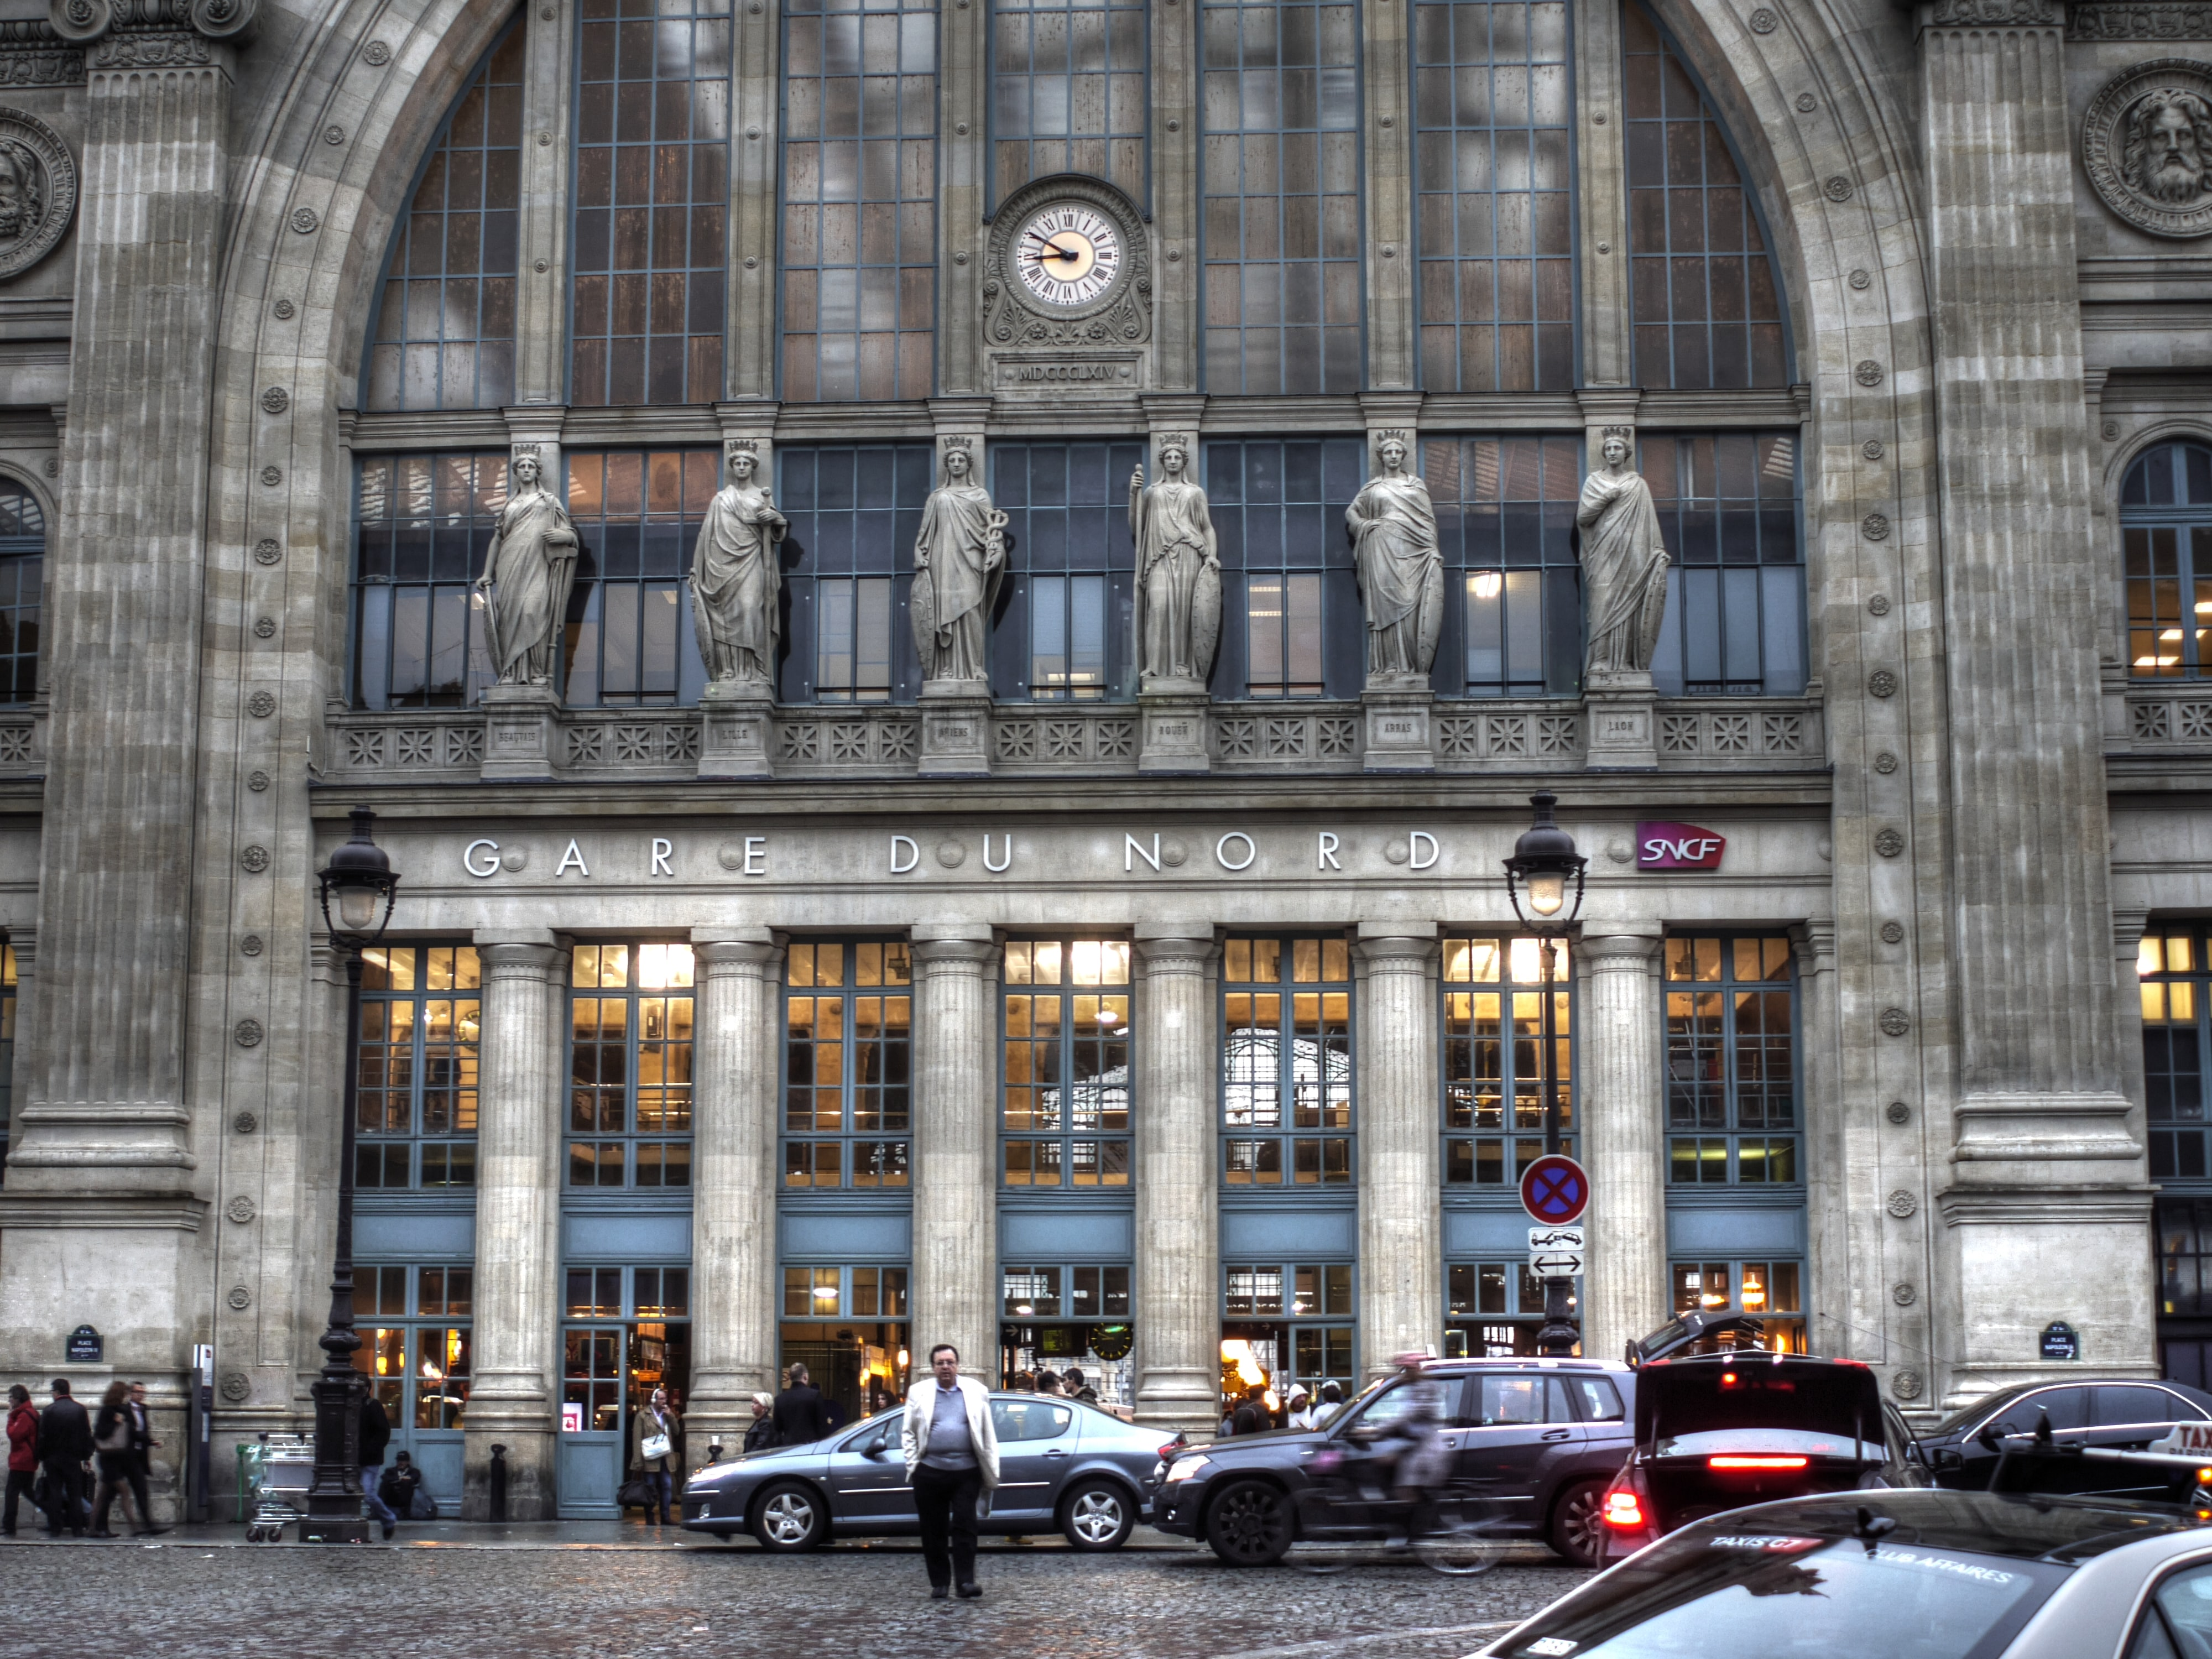 The entrance to the Gare du Nord railway station in Paris